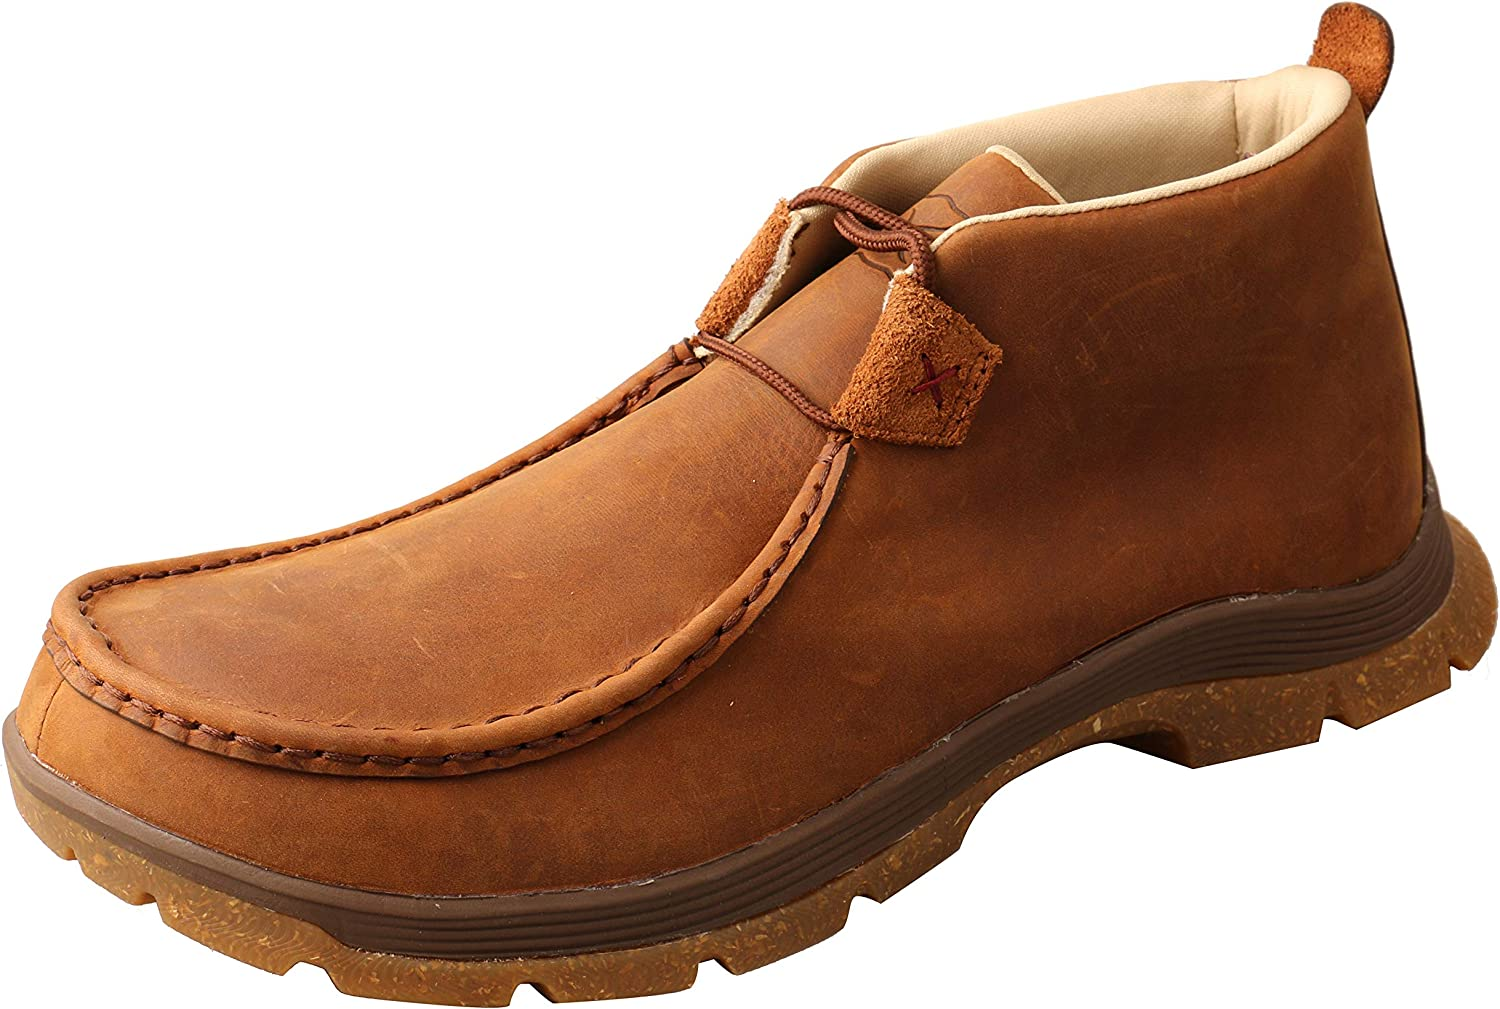 Twisted X Men's Chukka Time sale Great interest Toe Oblique